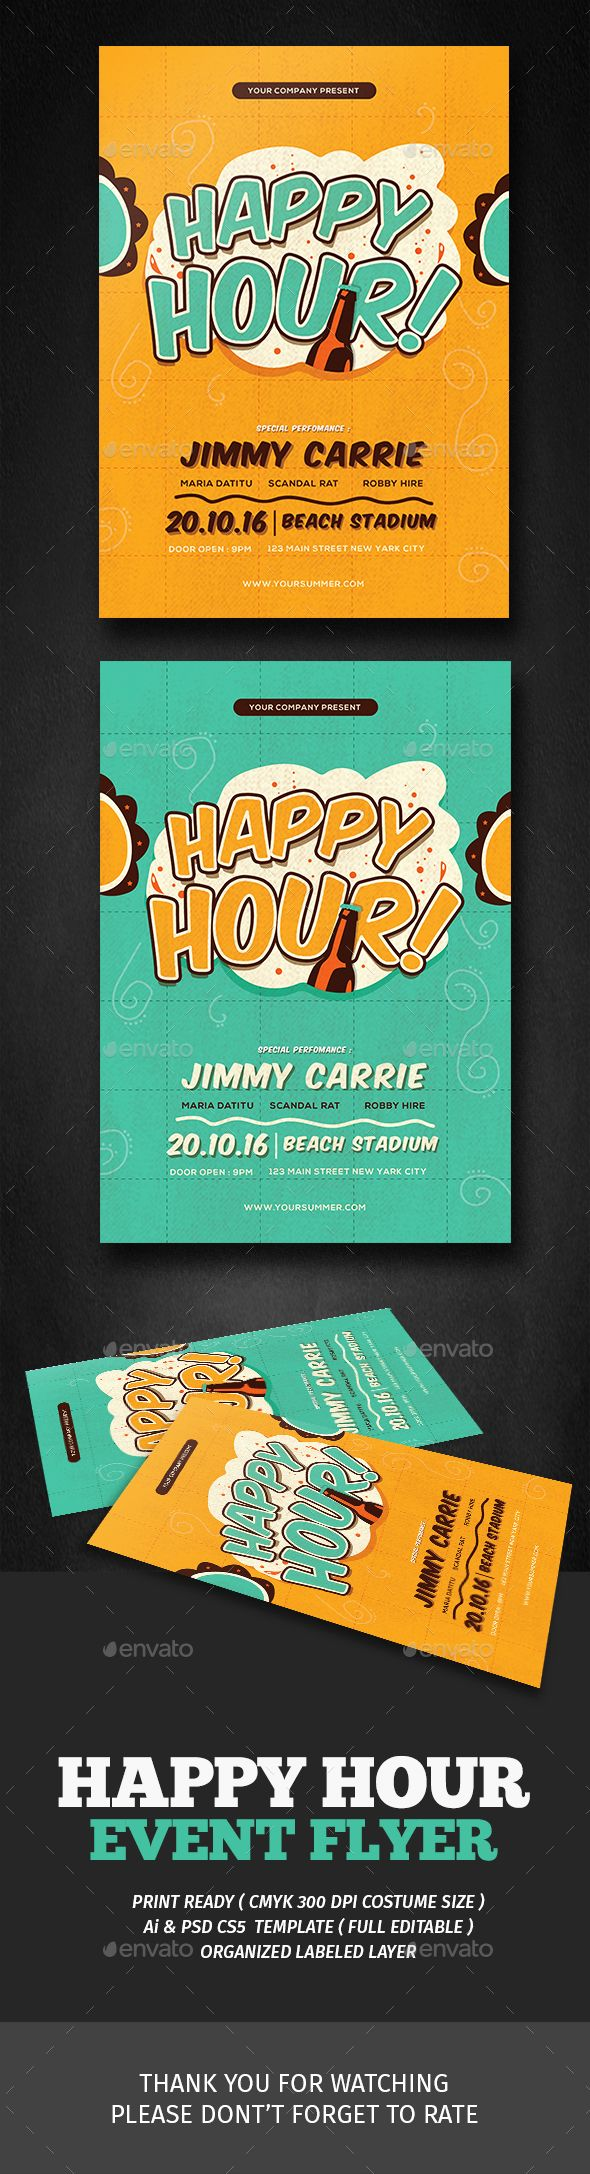 Retro Happy Hour Flyer  — PSD Template #club poster #happy hour promotion • …